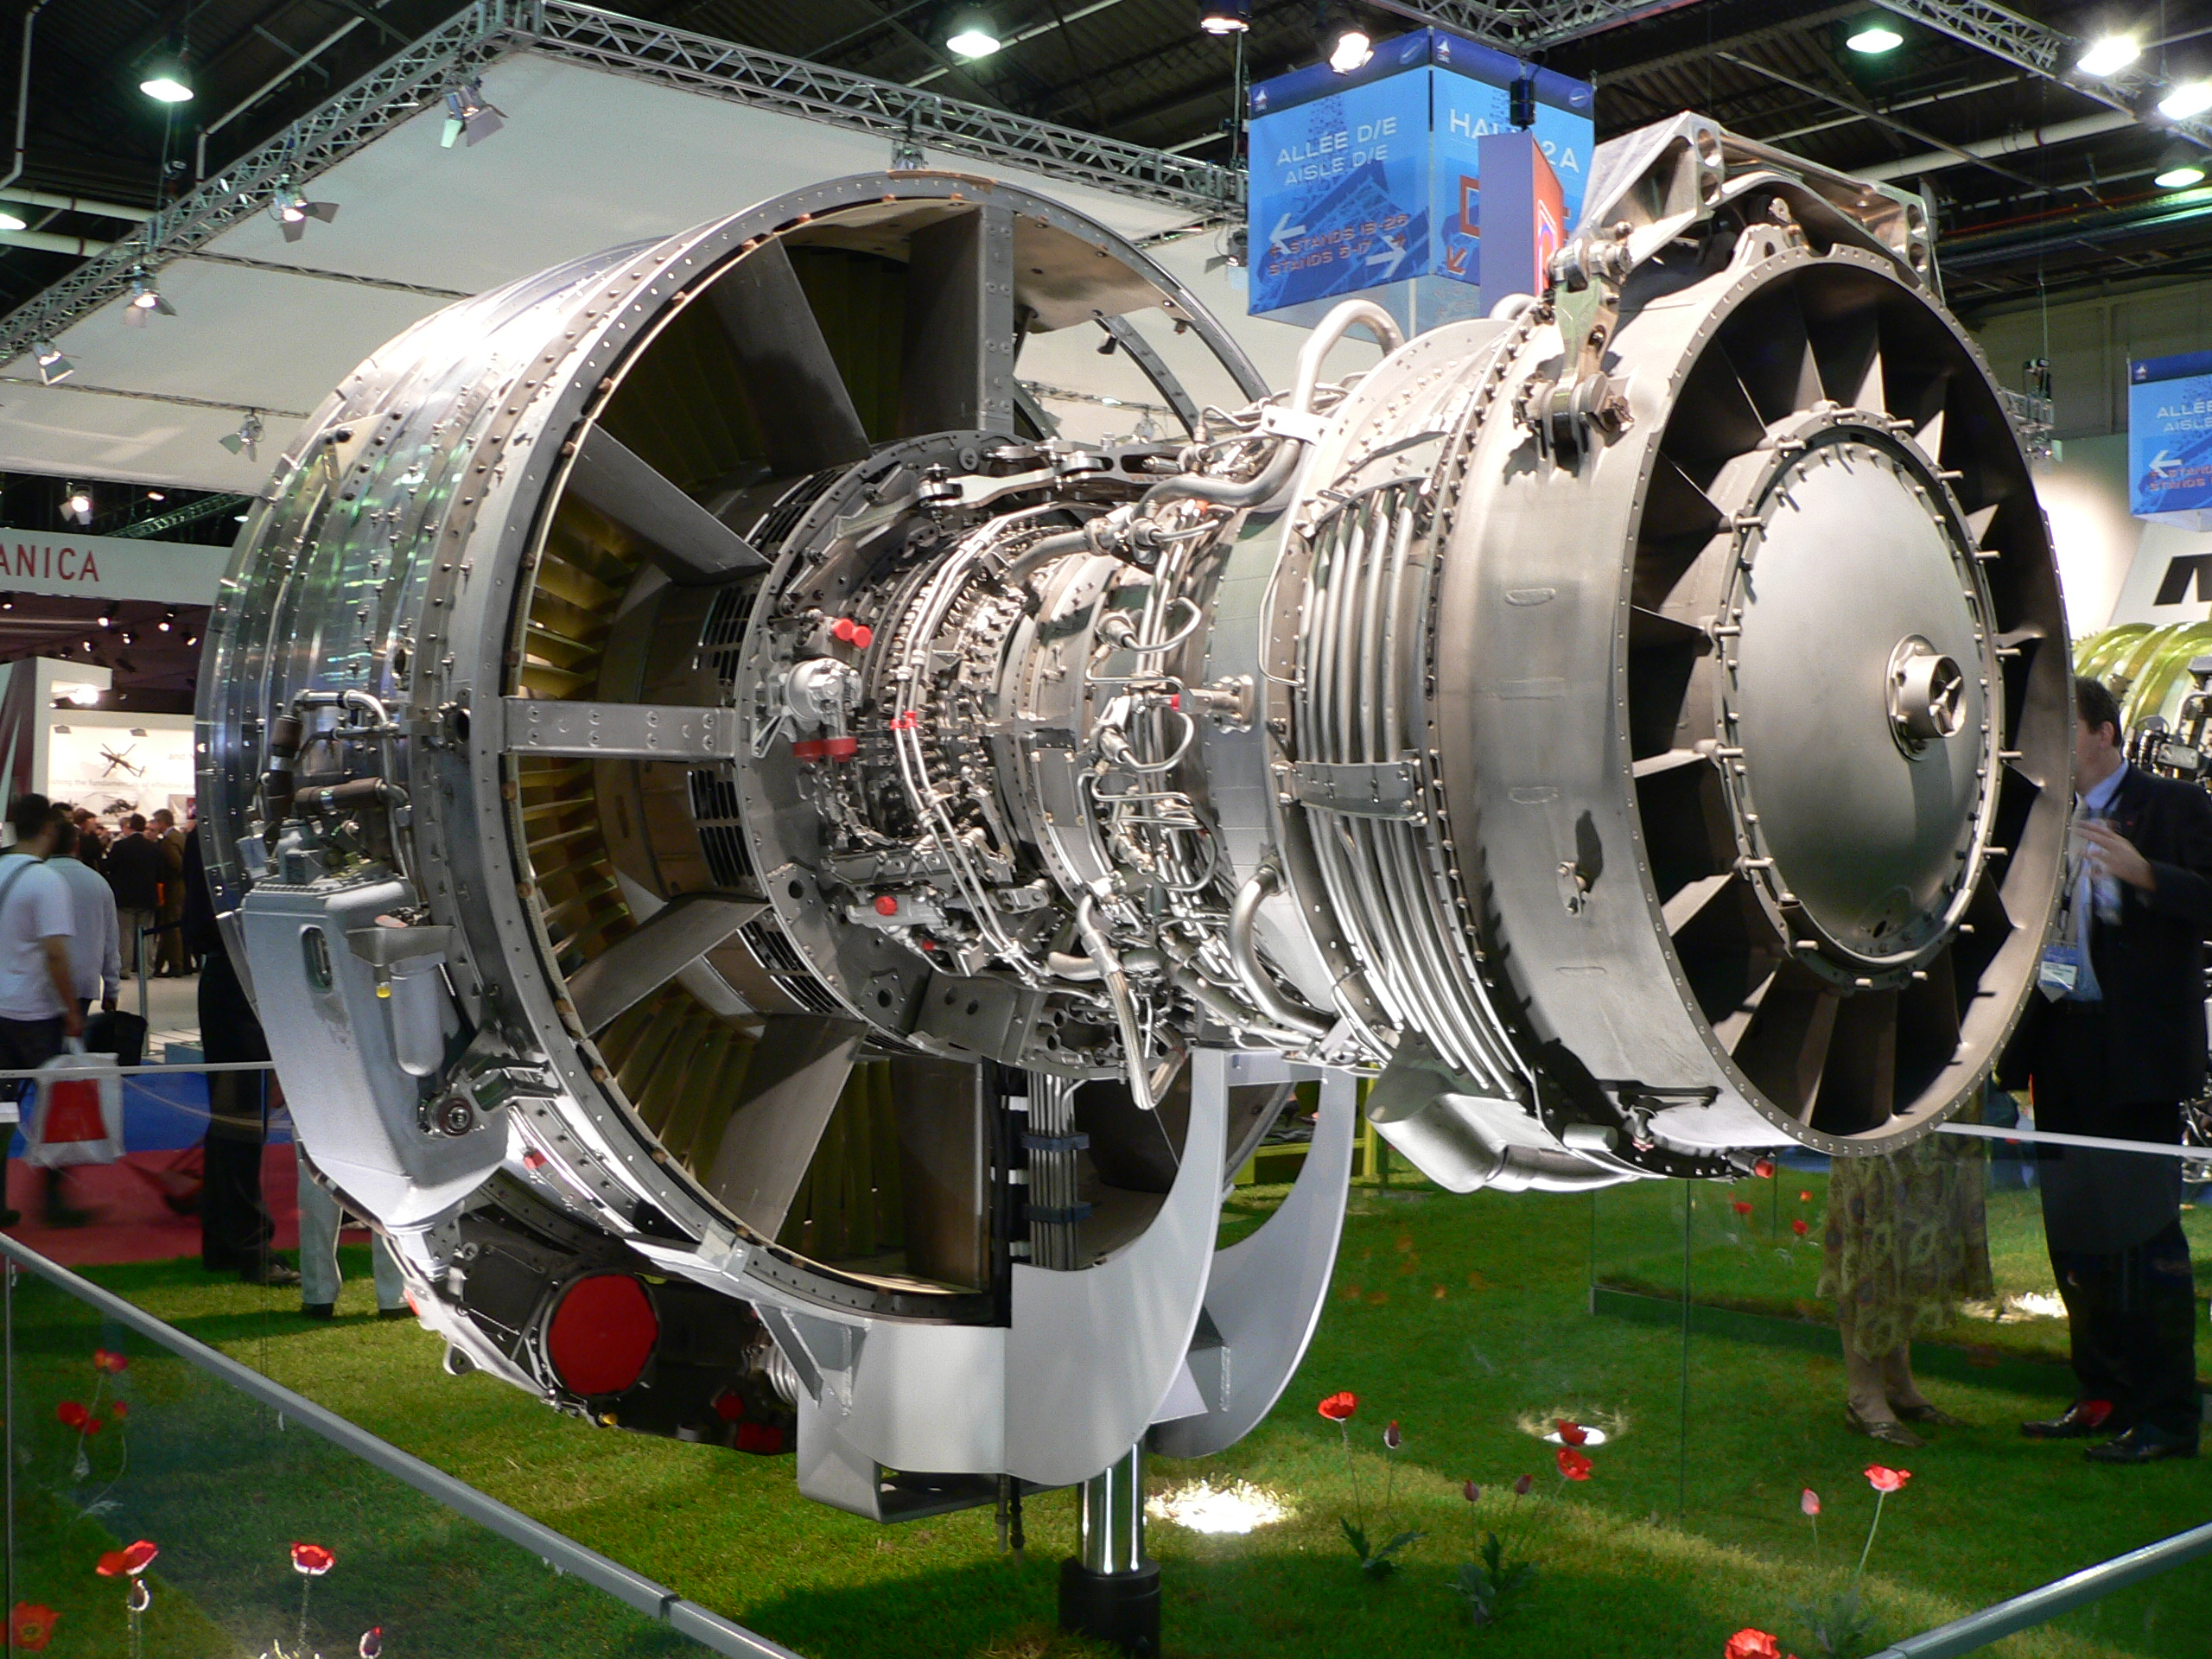 C E B A E B Eb Bfe Eaa Gas Turbine Air  pressor together with Geatp together with Cfm besides Fb D C B B B D Bfd A likewise Turbine System Synopsis. on ge aircraft engine diagram